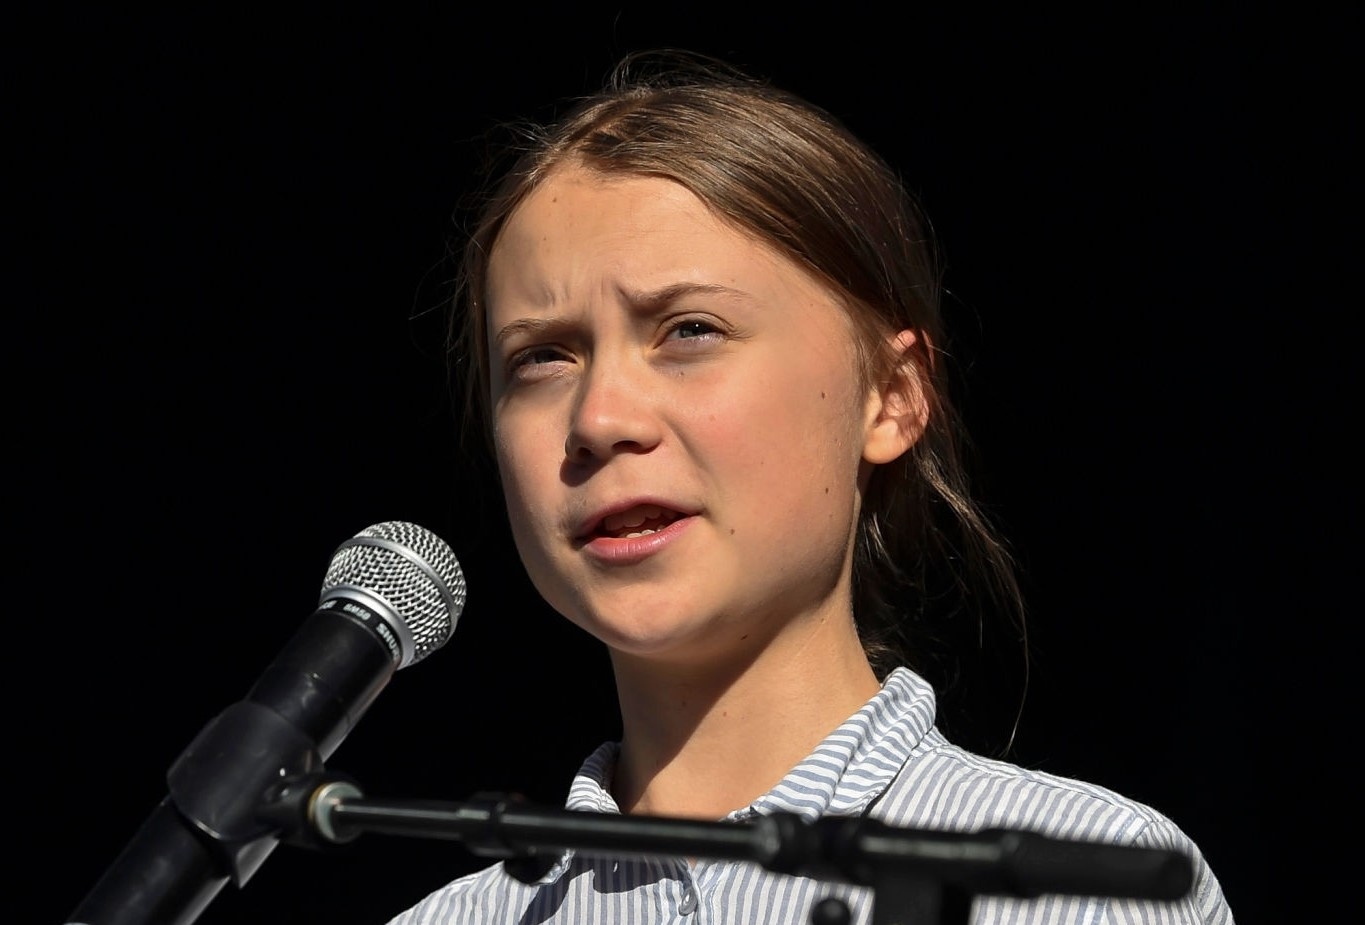 Greta Thunberg is the top favorite nominee to win Nobel peace prize